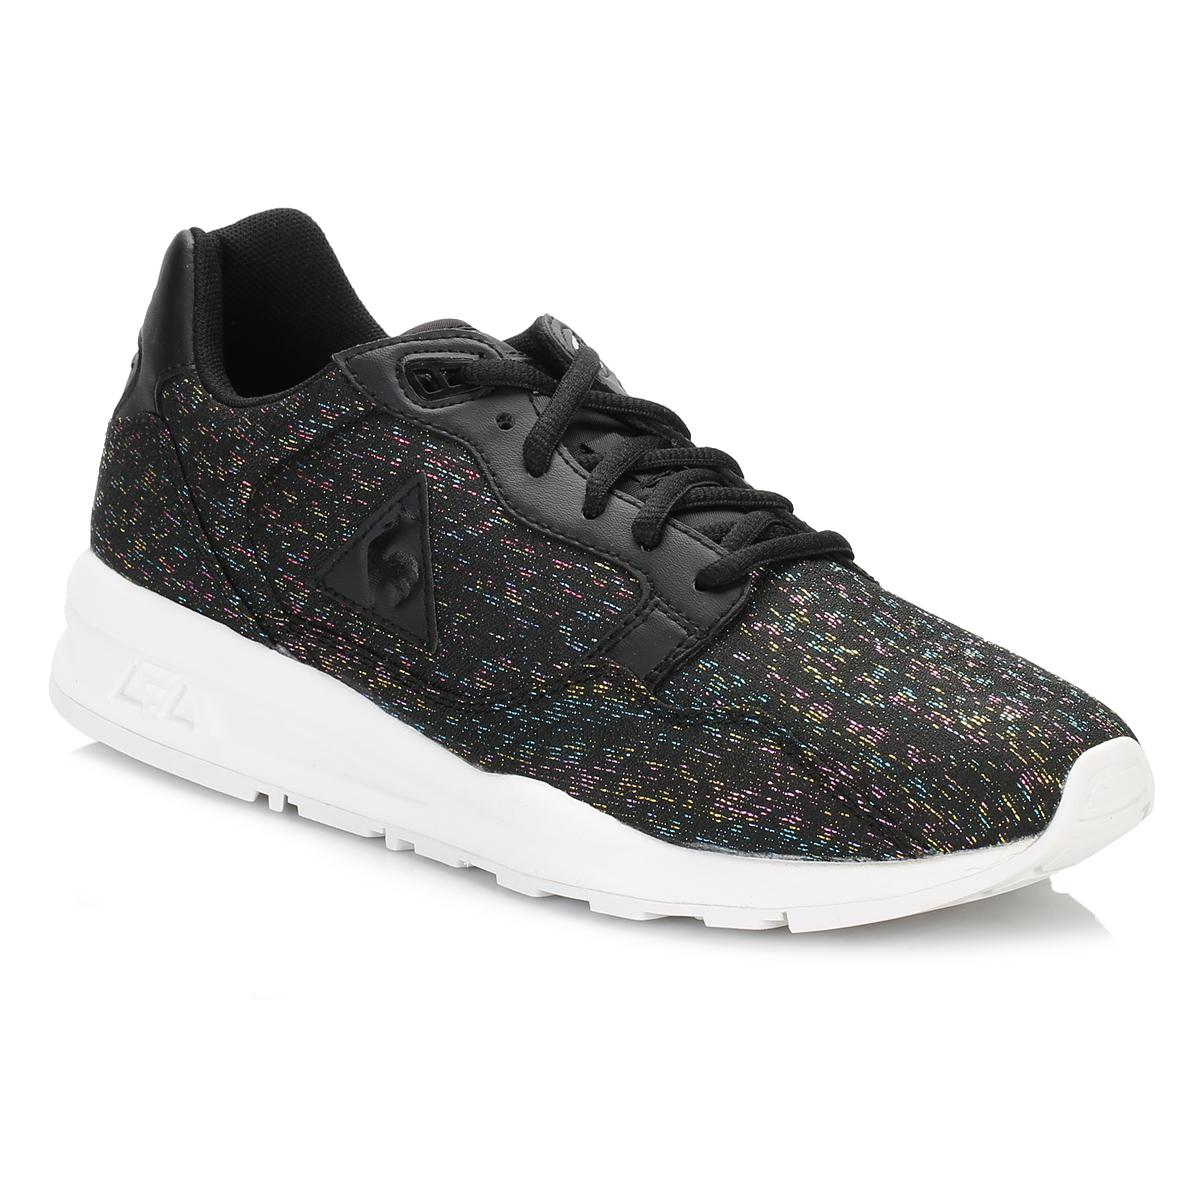 c581799f45c Le Coq Sportif Womens Black Lcs R900 Rainbow Jacquard Trainers in ...